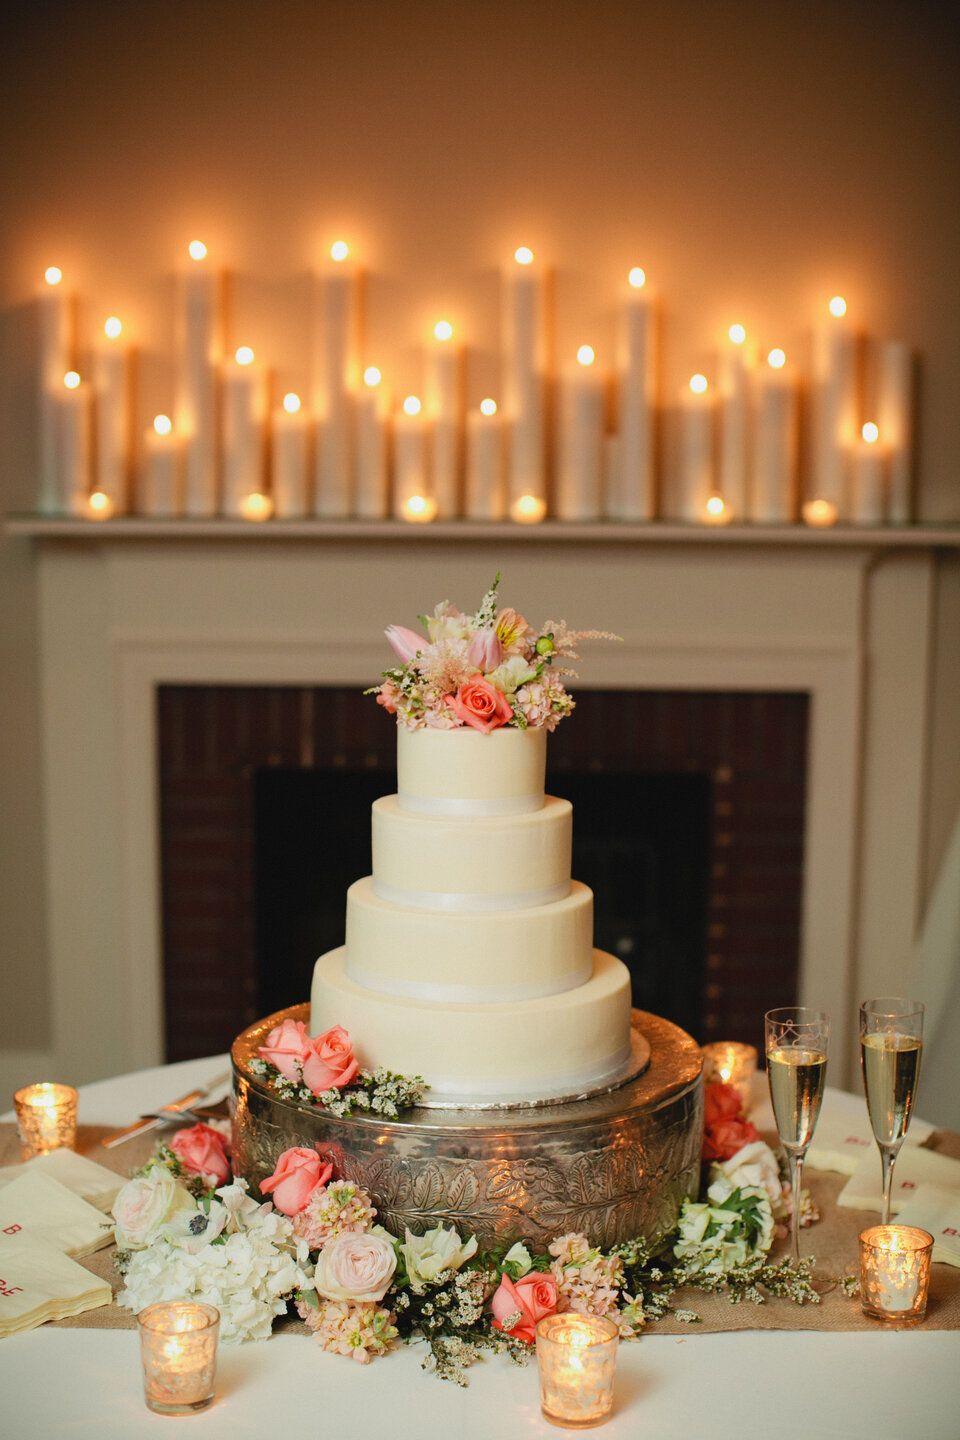 can i use fresh flowers on a cake